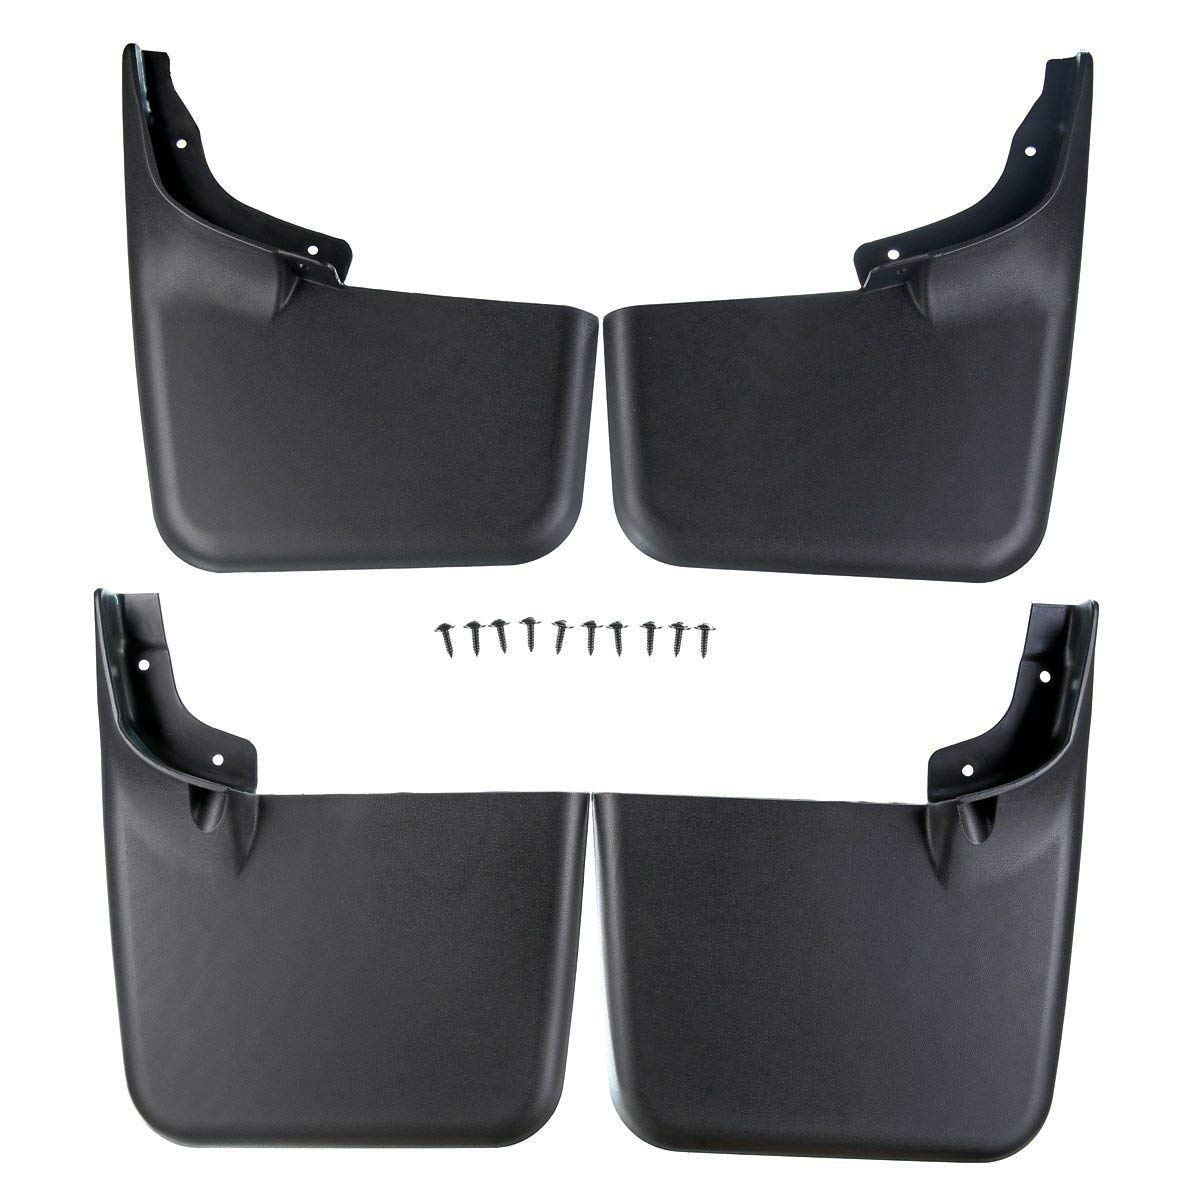 A-Premium Splash Guards Mud Flaps Mudflaps for Ford F-150 F150 2004-2014 With Factory Fender Flares Front and Rear 4-PC Set